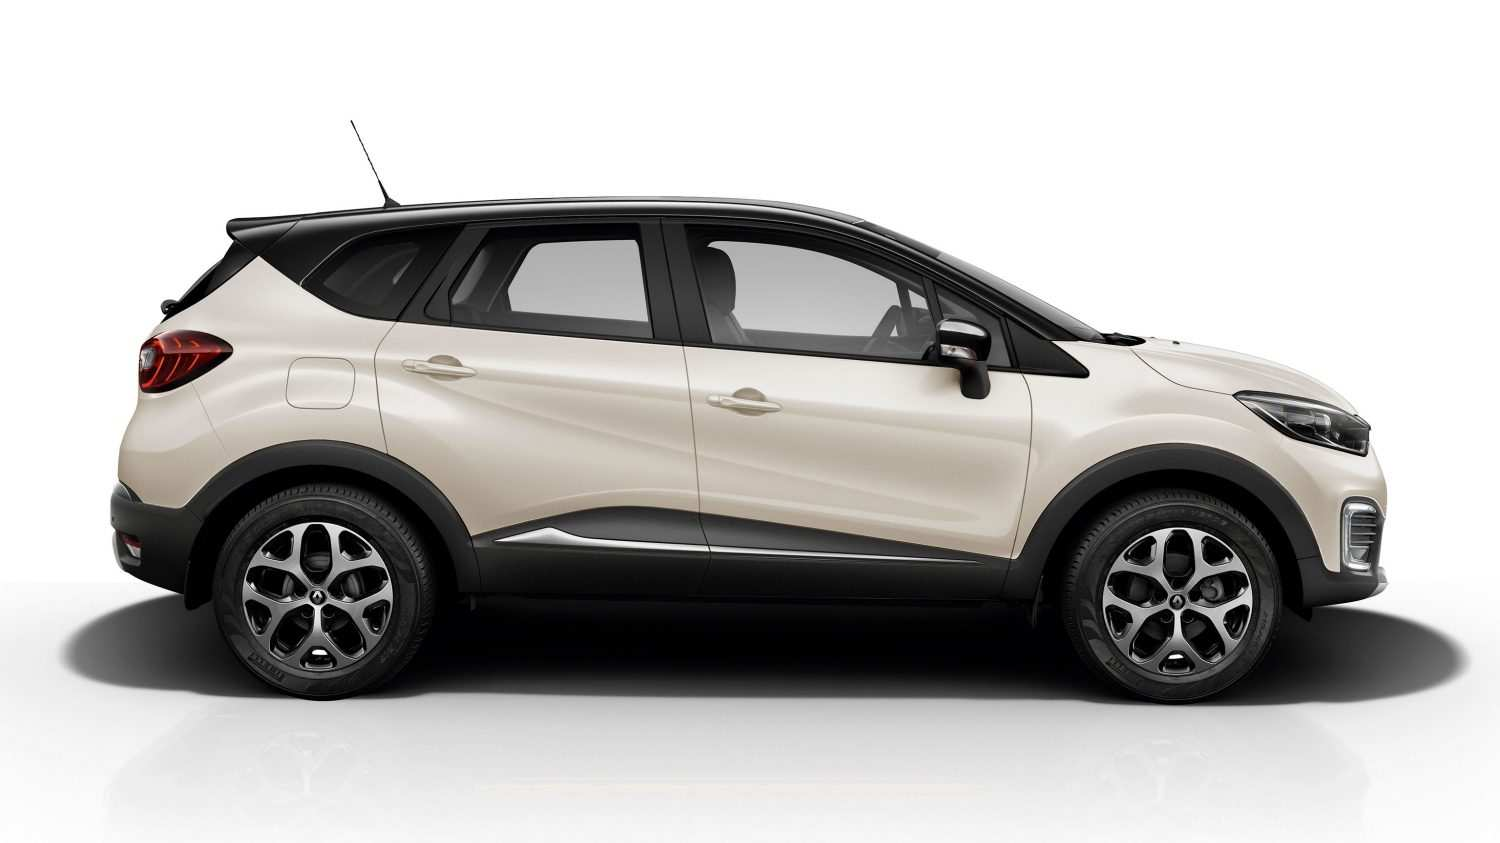 84 New Renault Kaptur 2019 Model by Renault Kaptur 2019